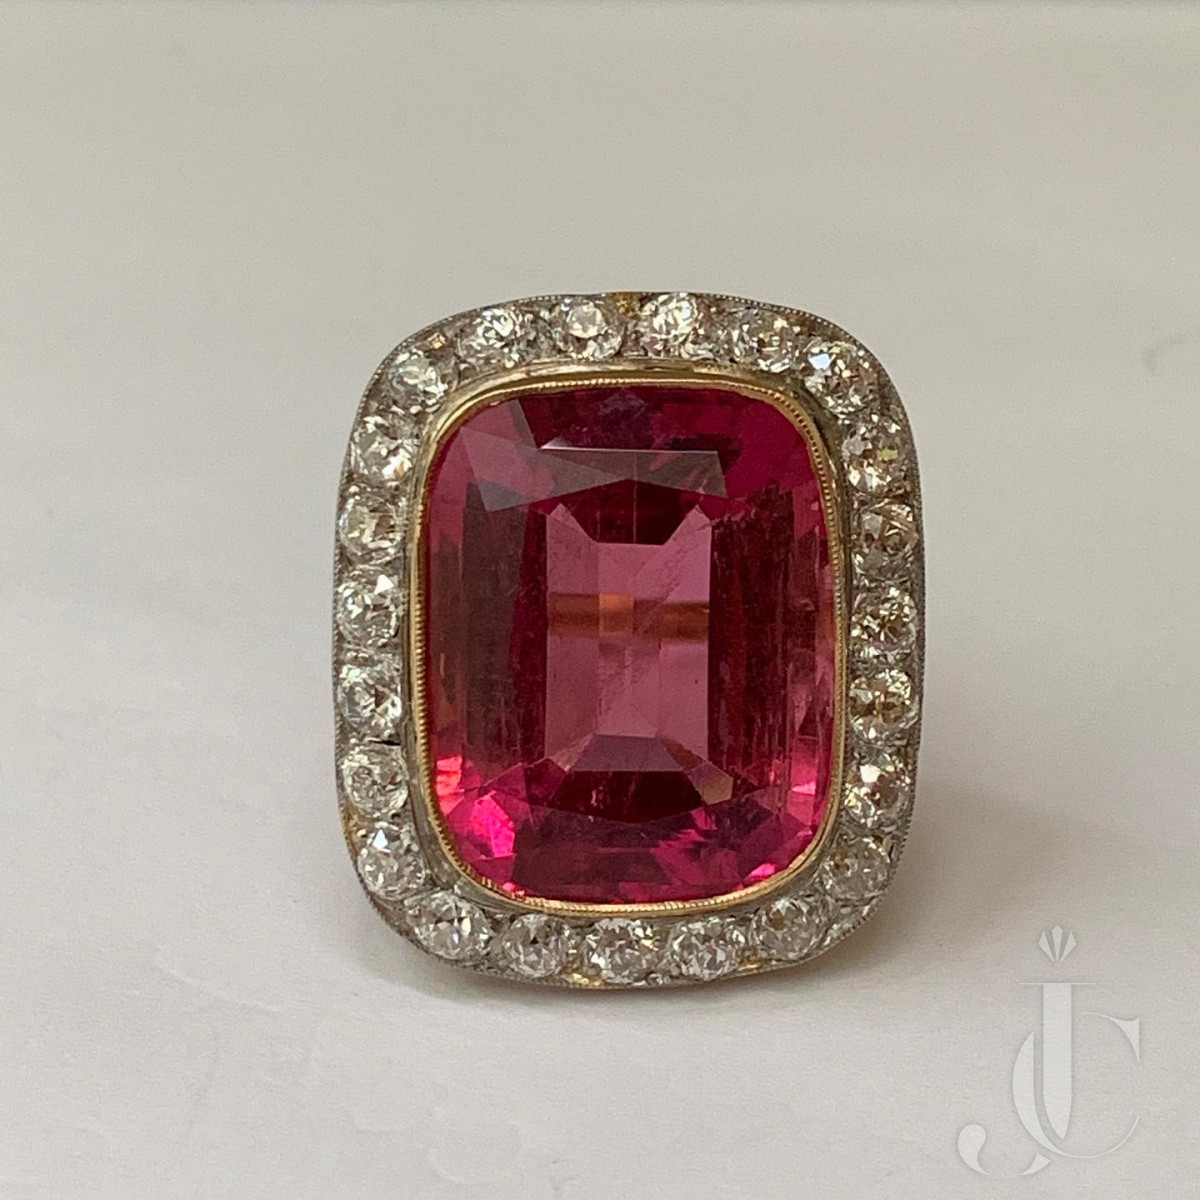 A Large Rubellite and Diamond Ring